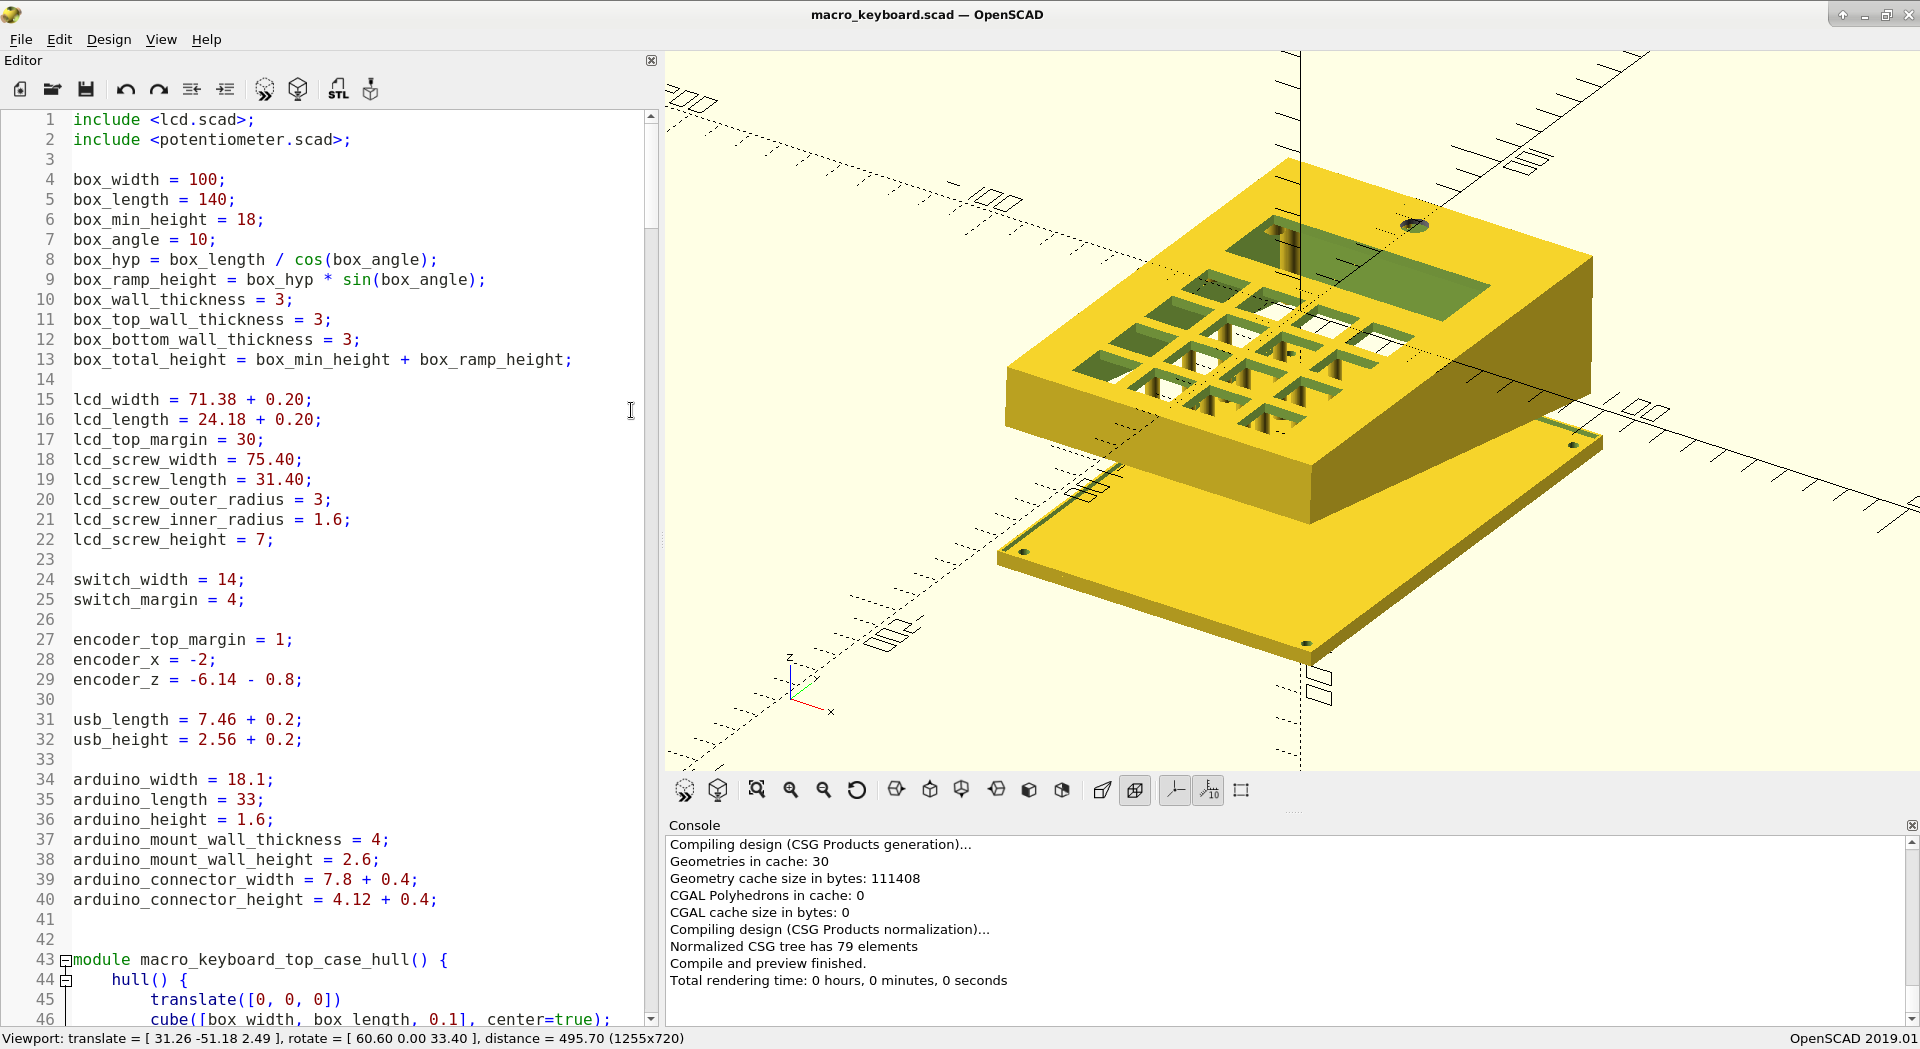 Screenshot of OpenSCAD with the keyboard design